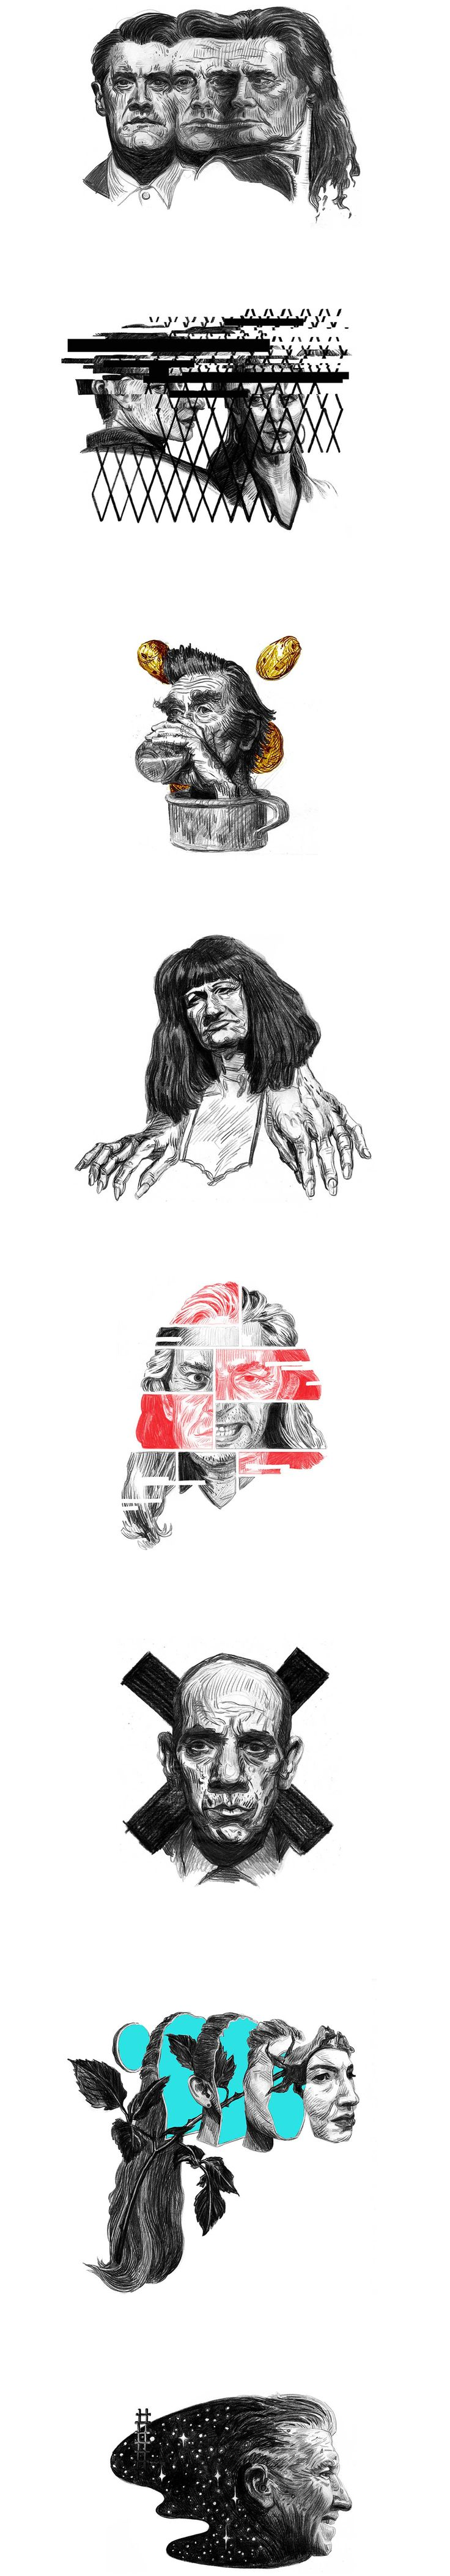 Portrait practice. Twin Peaks 2017. on Behance